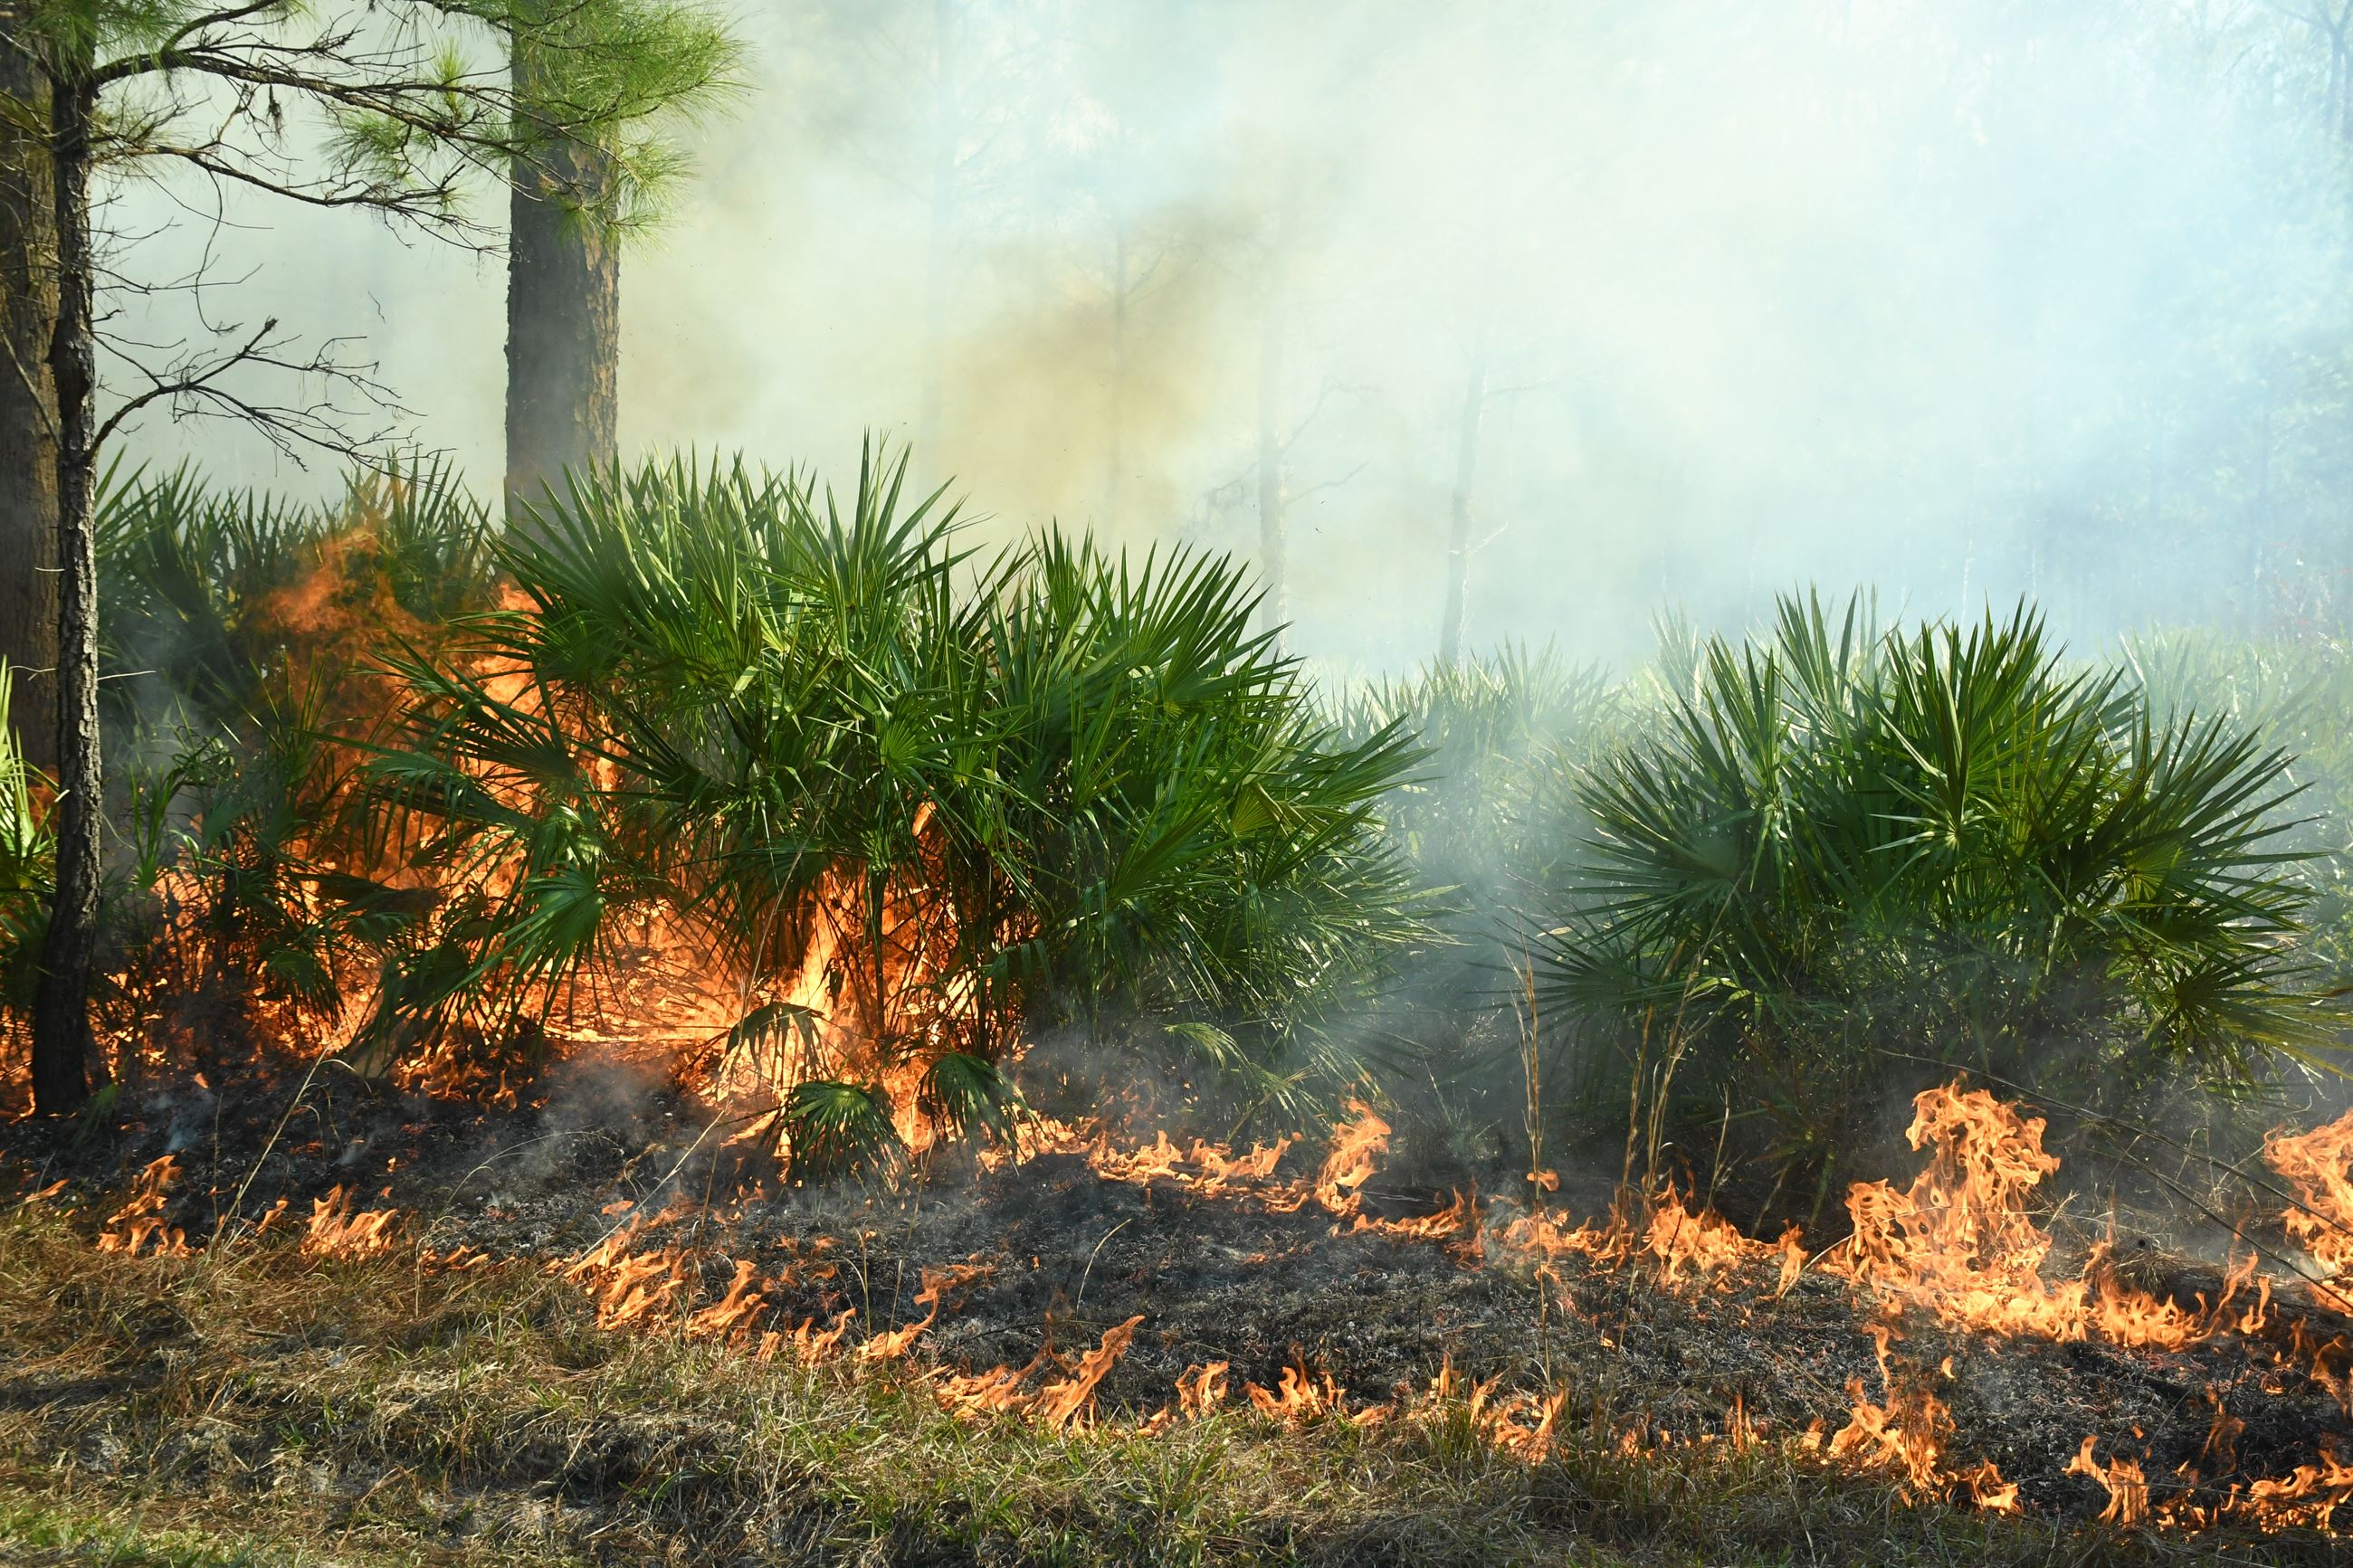 Fire moving towards vegetation